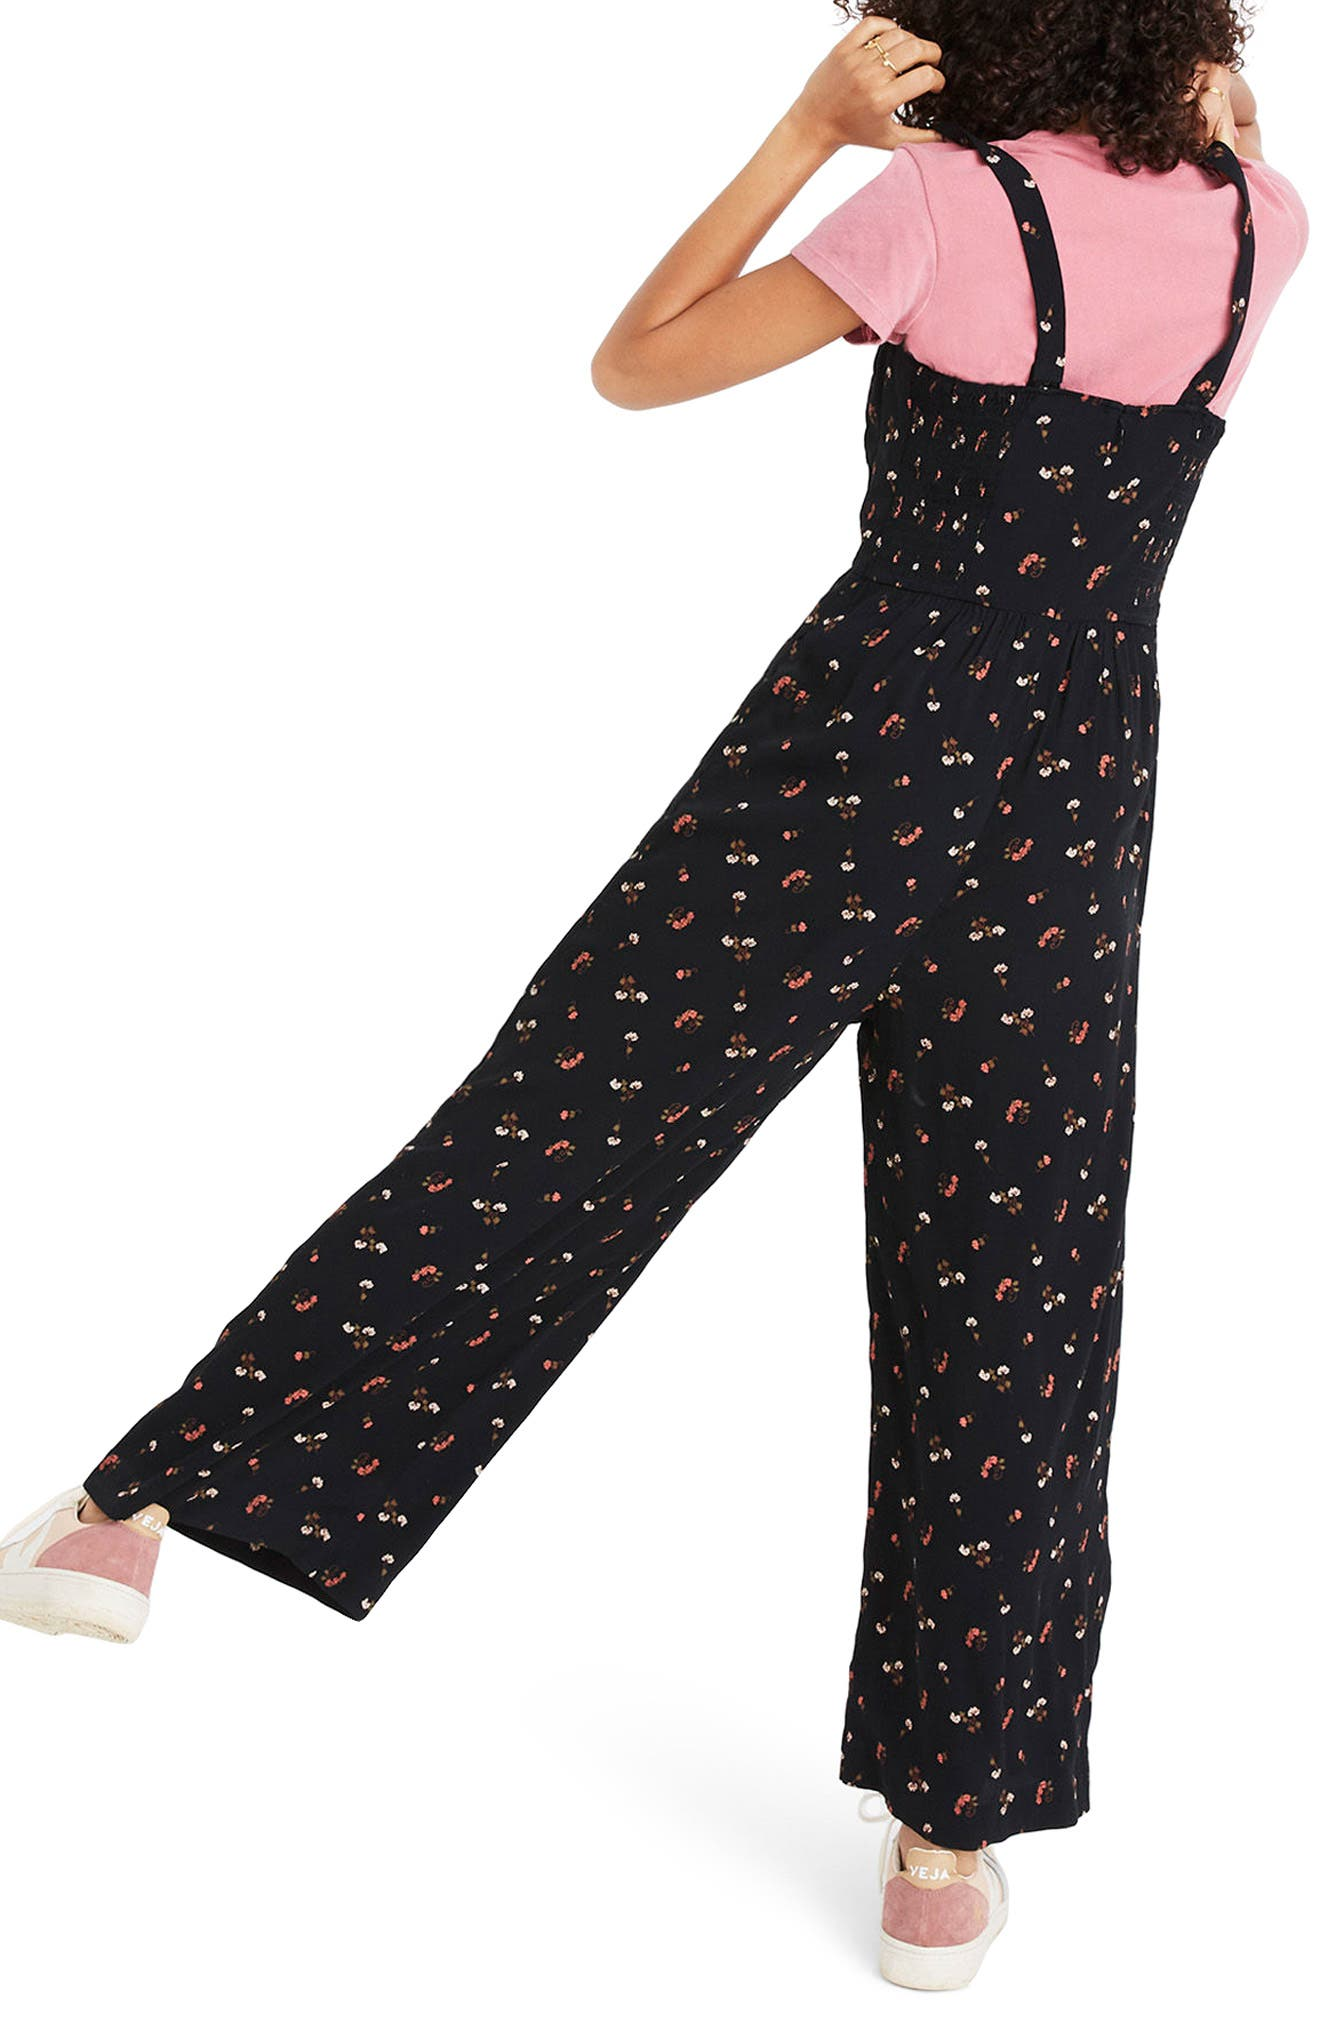 MADEWELL,                             Flower Toss Smocked Crop Jumpsuit,                             Alternate thumbnail 2, color,                             009